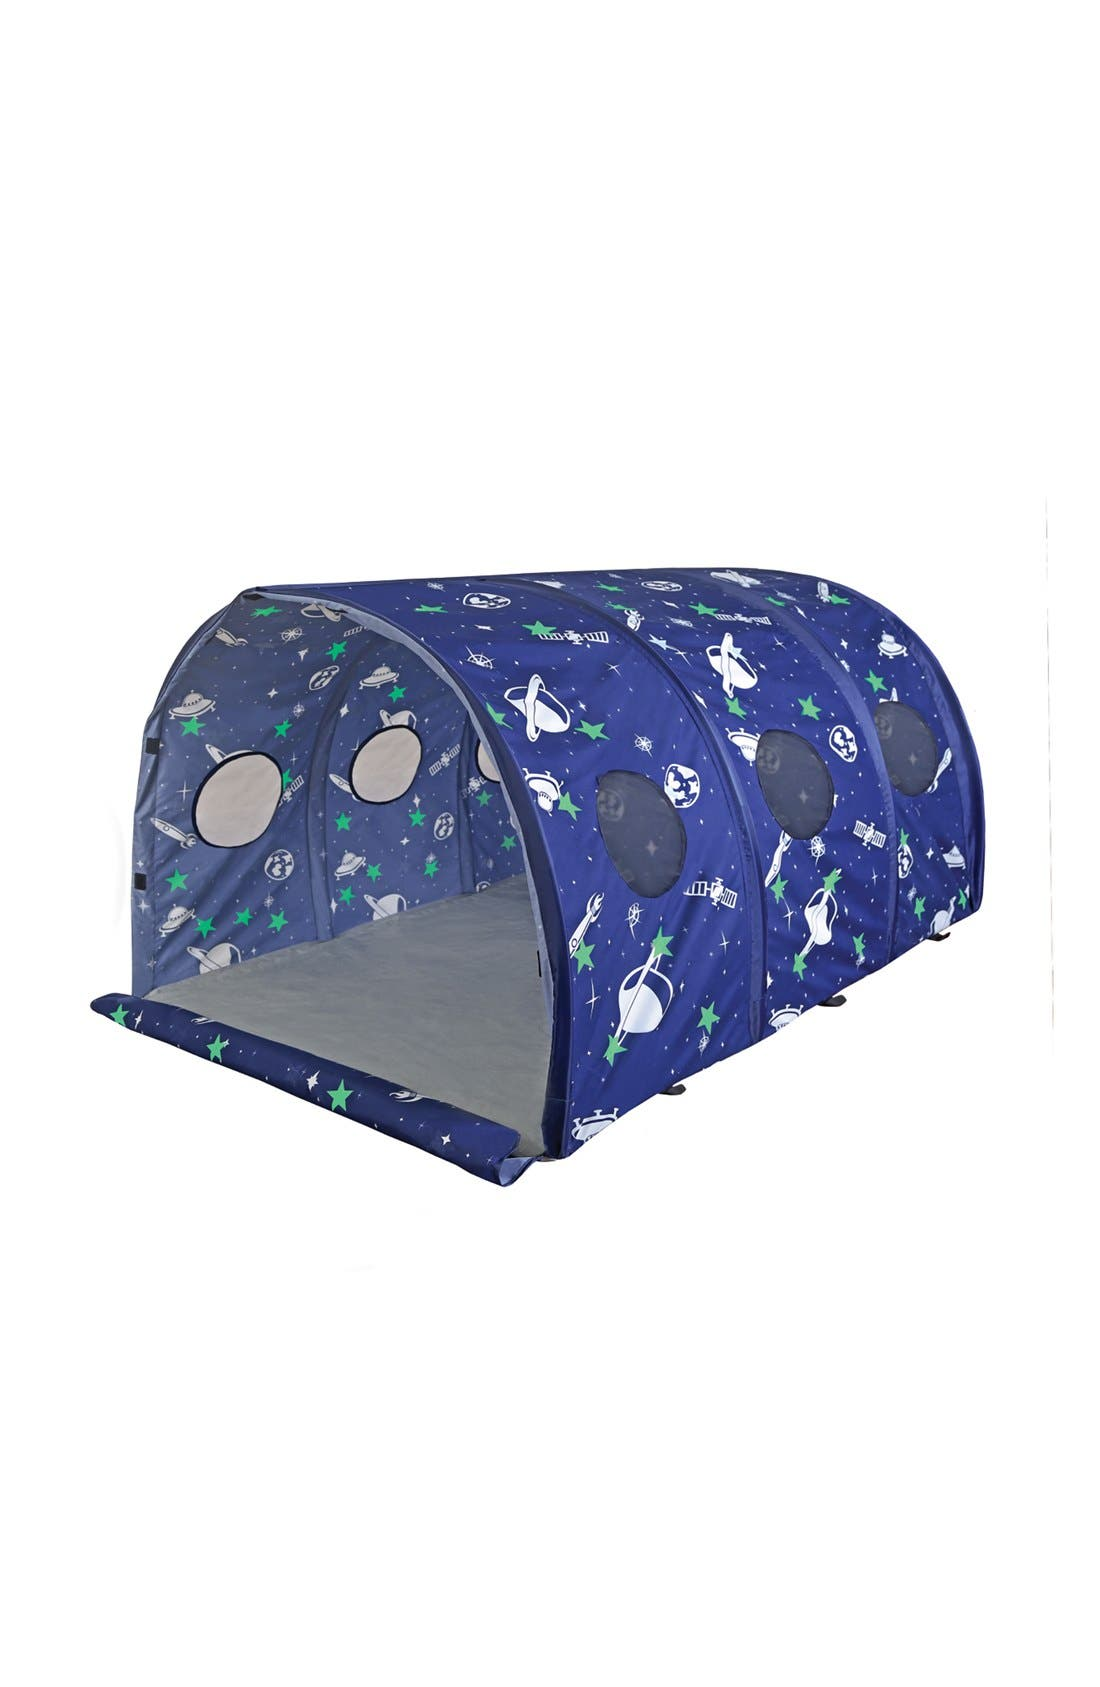 PACIFIC PLAY TENTS 'Space Capsule' Glow in the Dark Tent, Main, color, BLUE/ WHITE